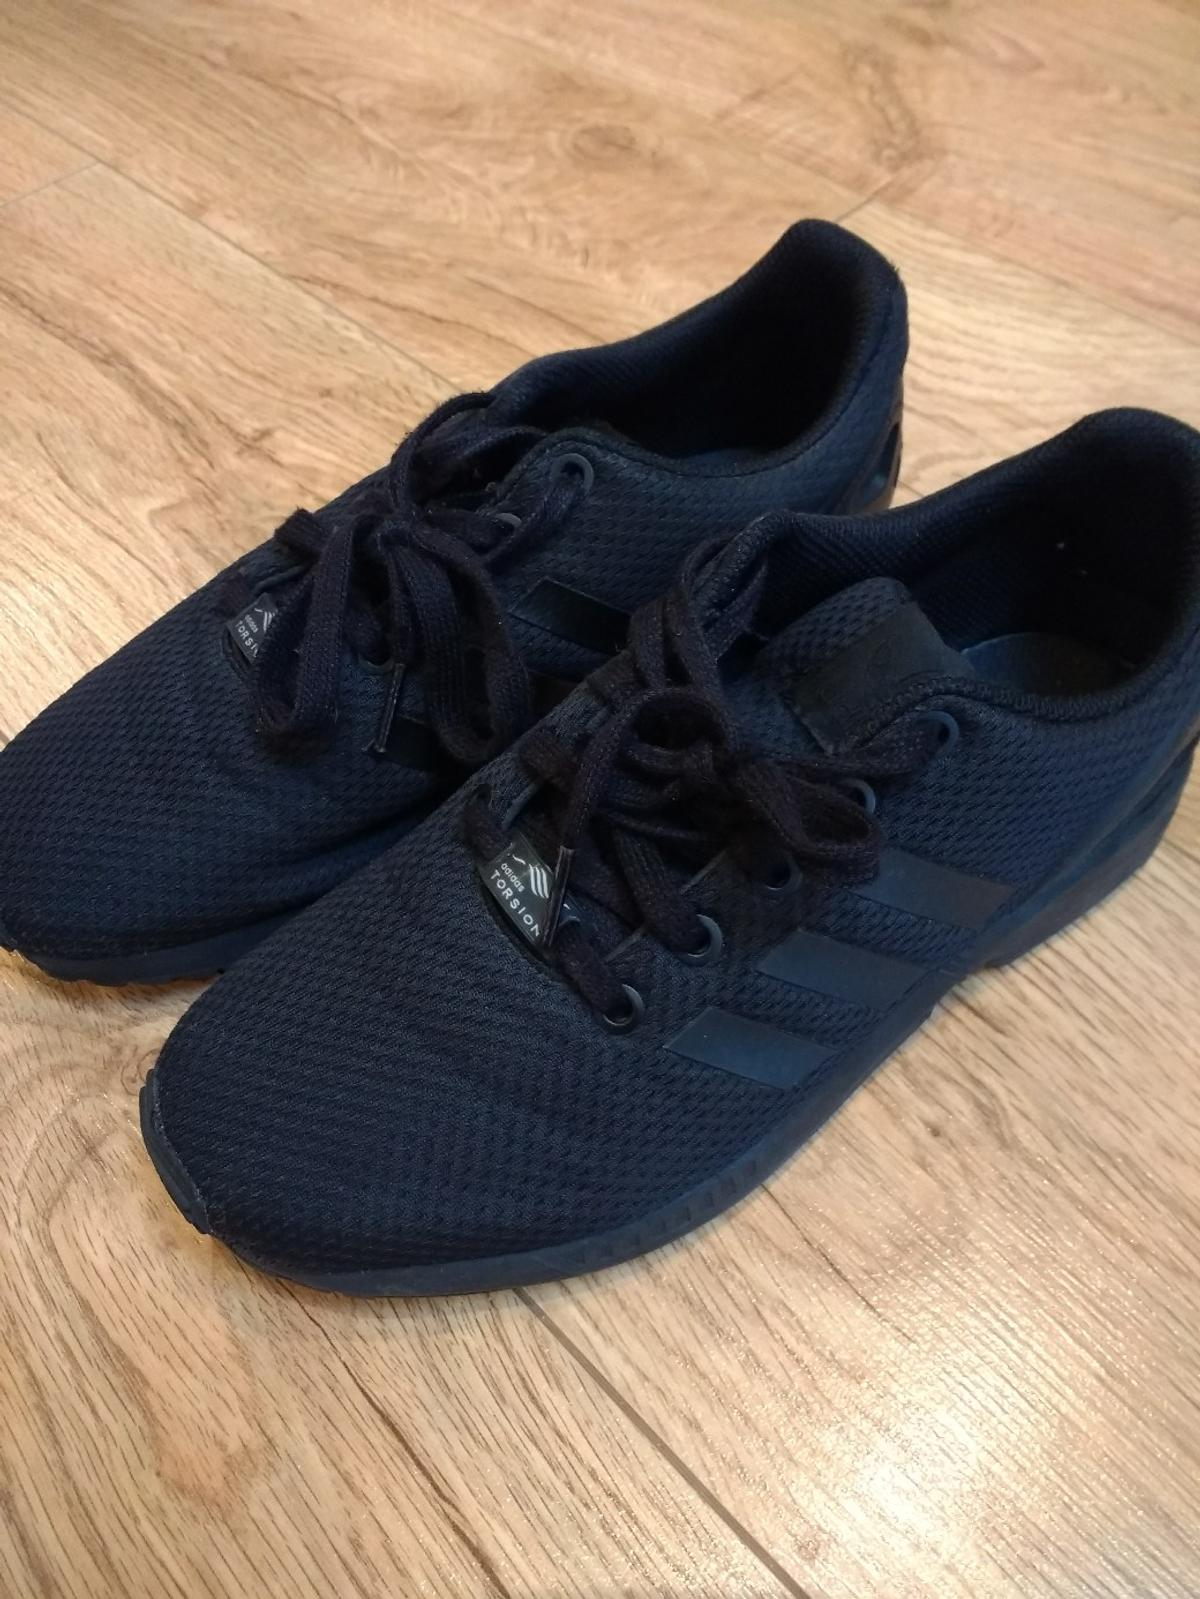 promo code 6d8d7 fc2be Adidas black Torsion trainers in London Borough of Bexley for £25.00 ...